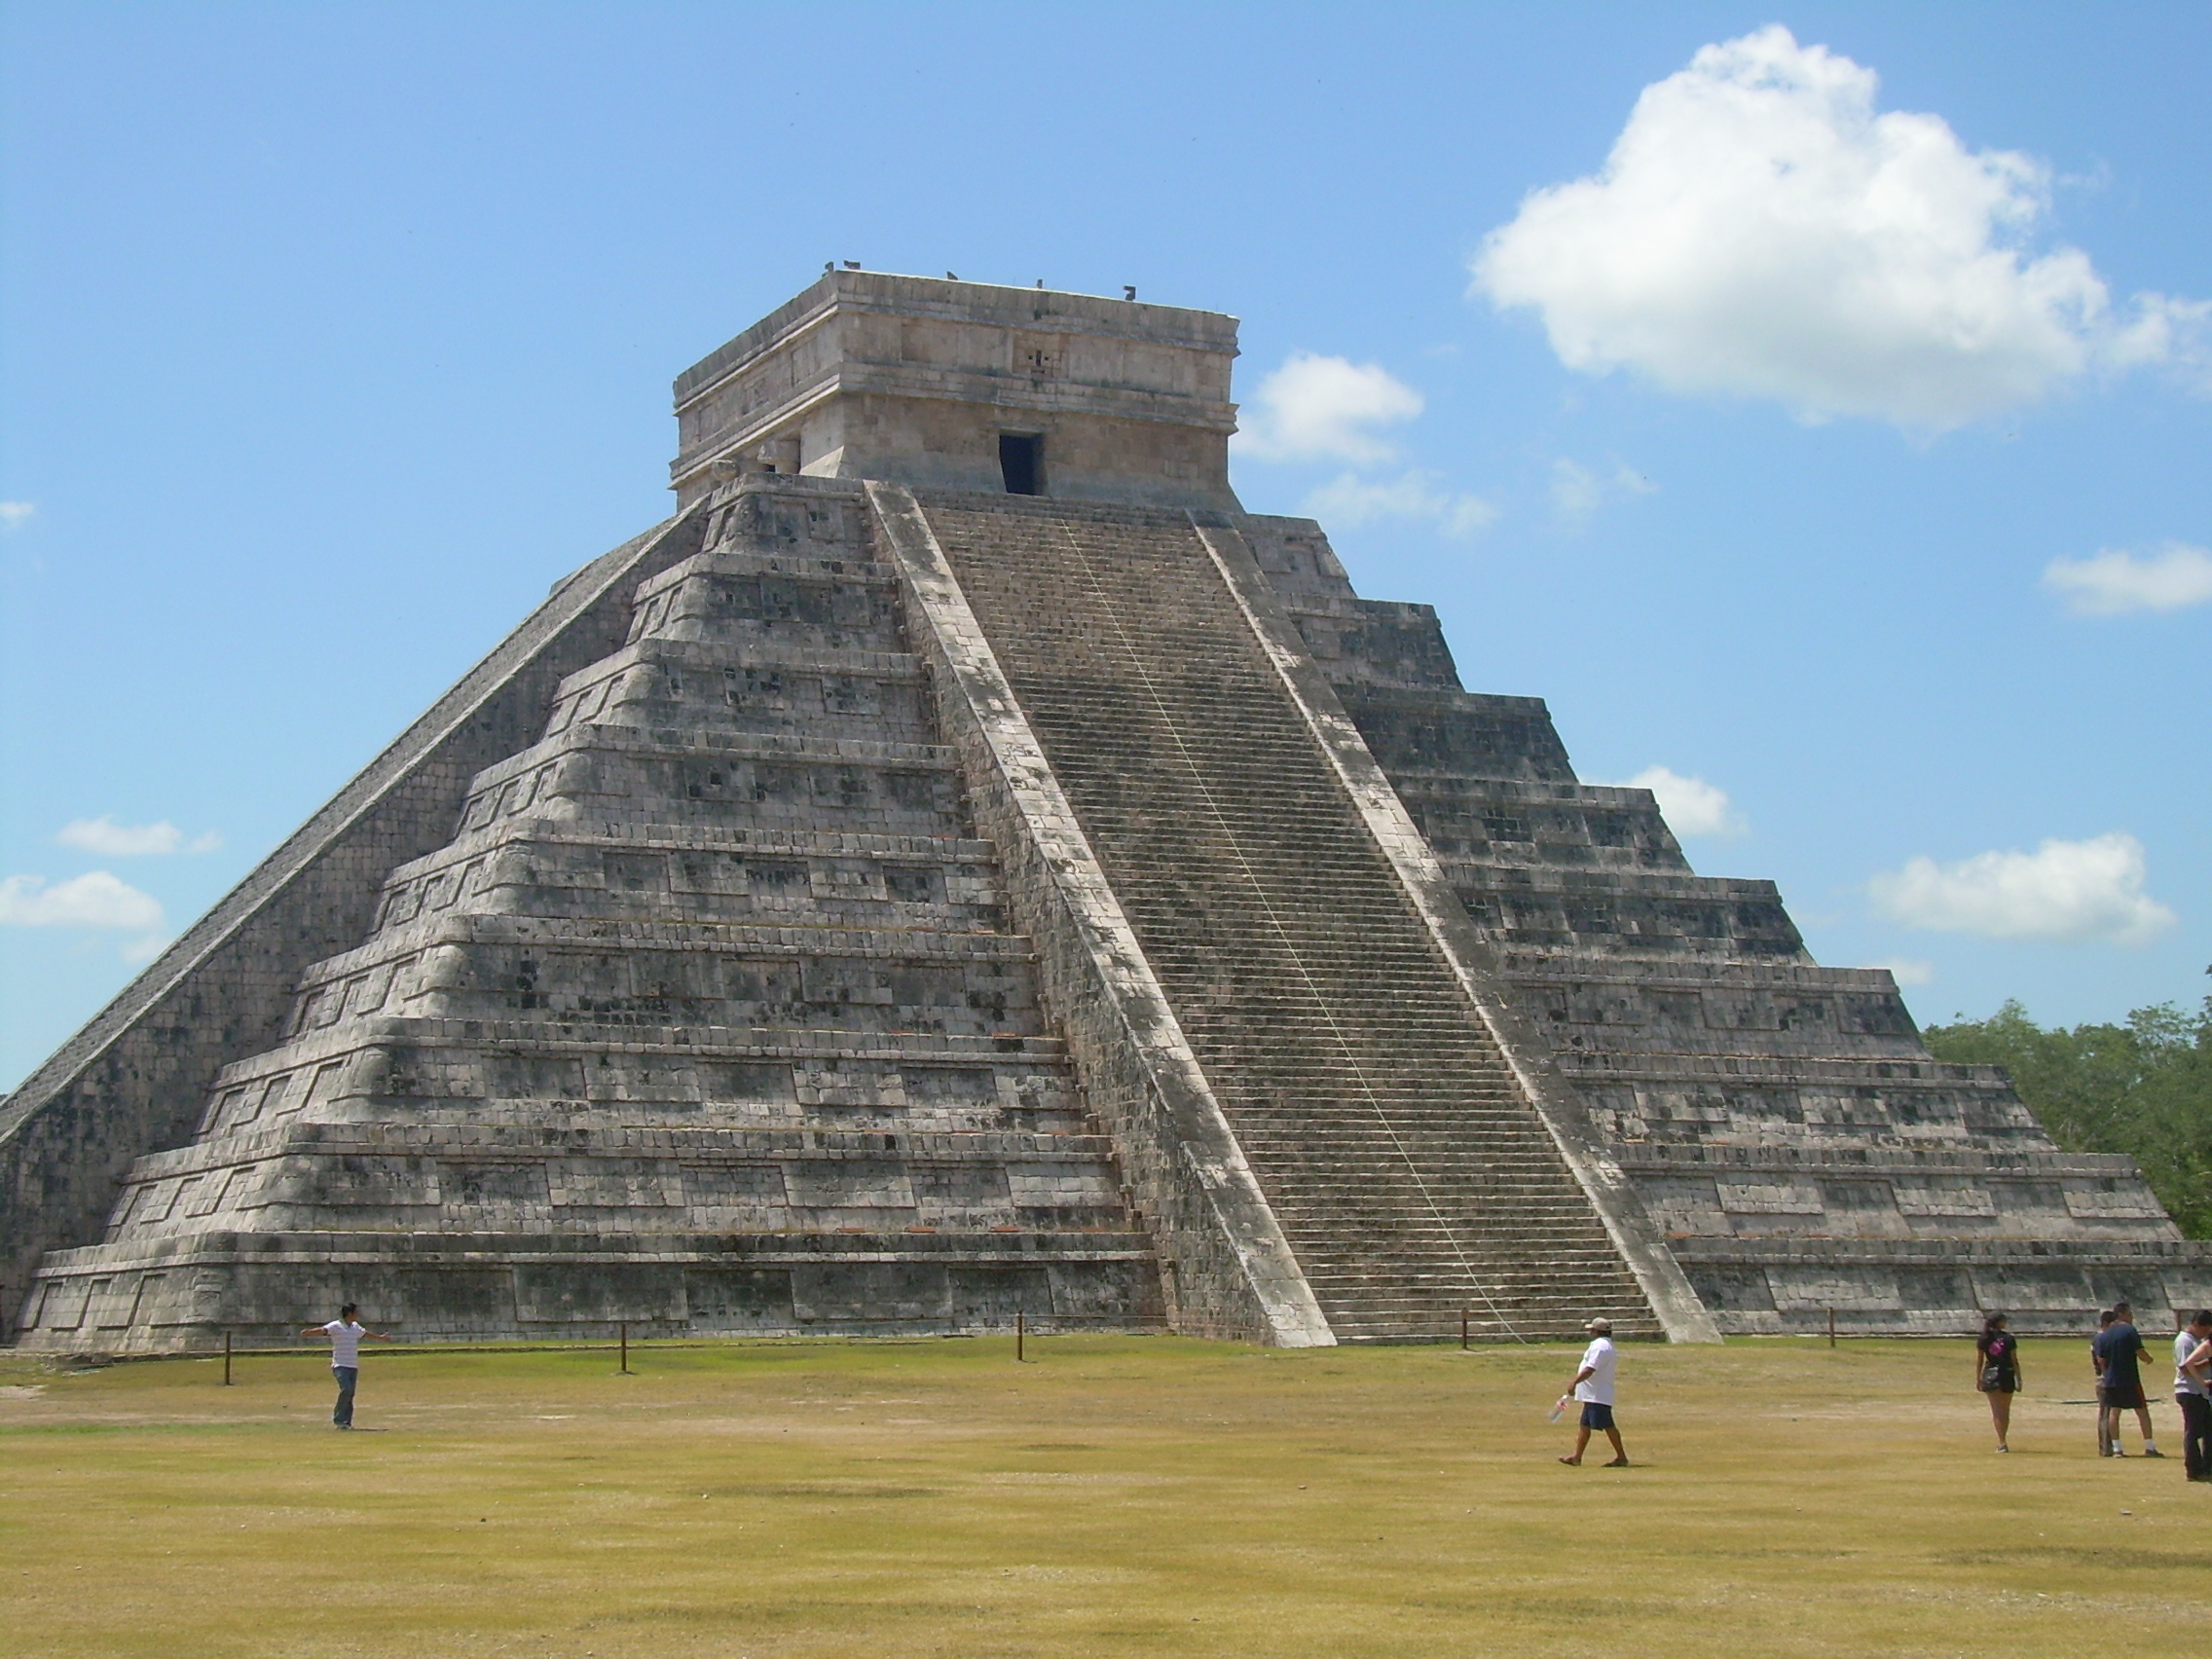 Modern 7 wonders of the world - Seven Wonders Of The Ancient World